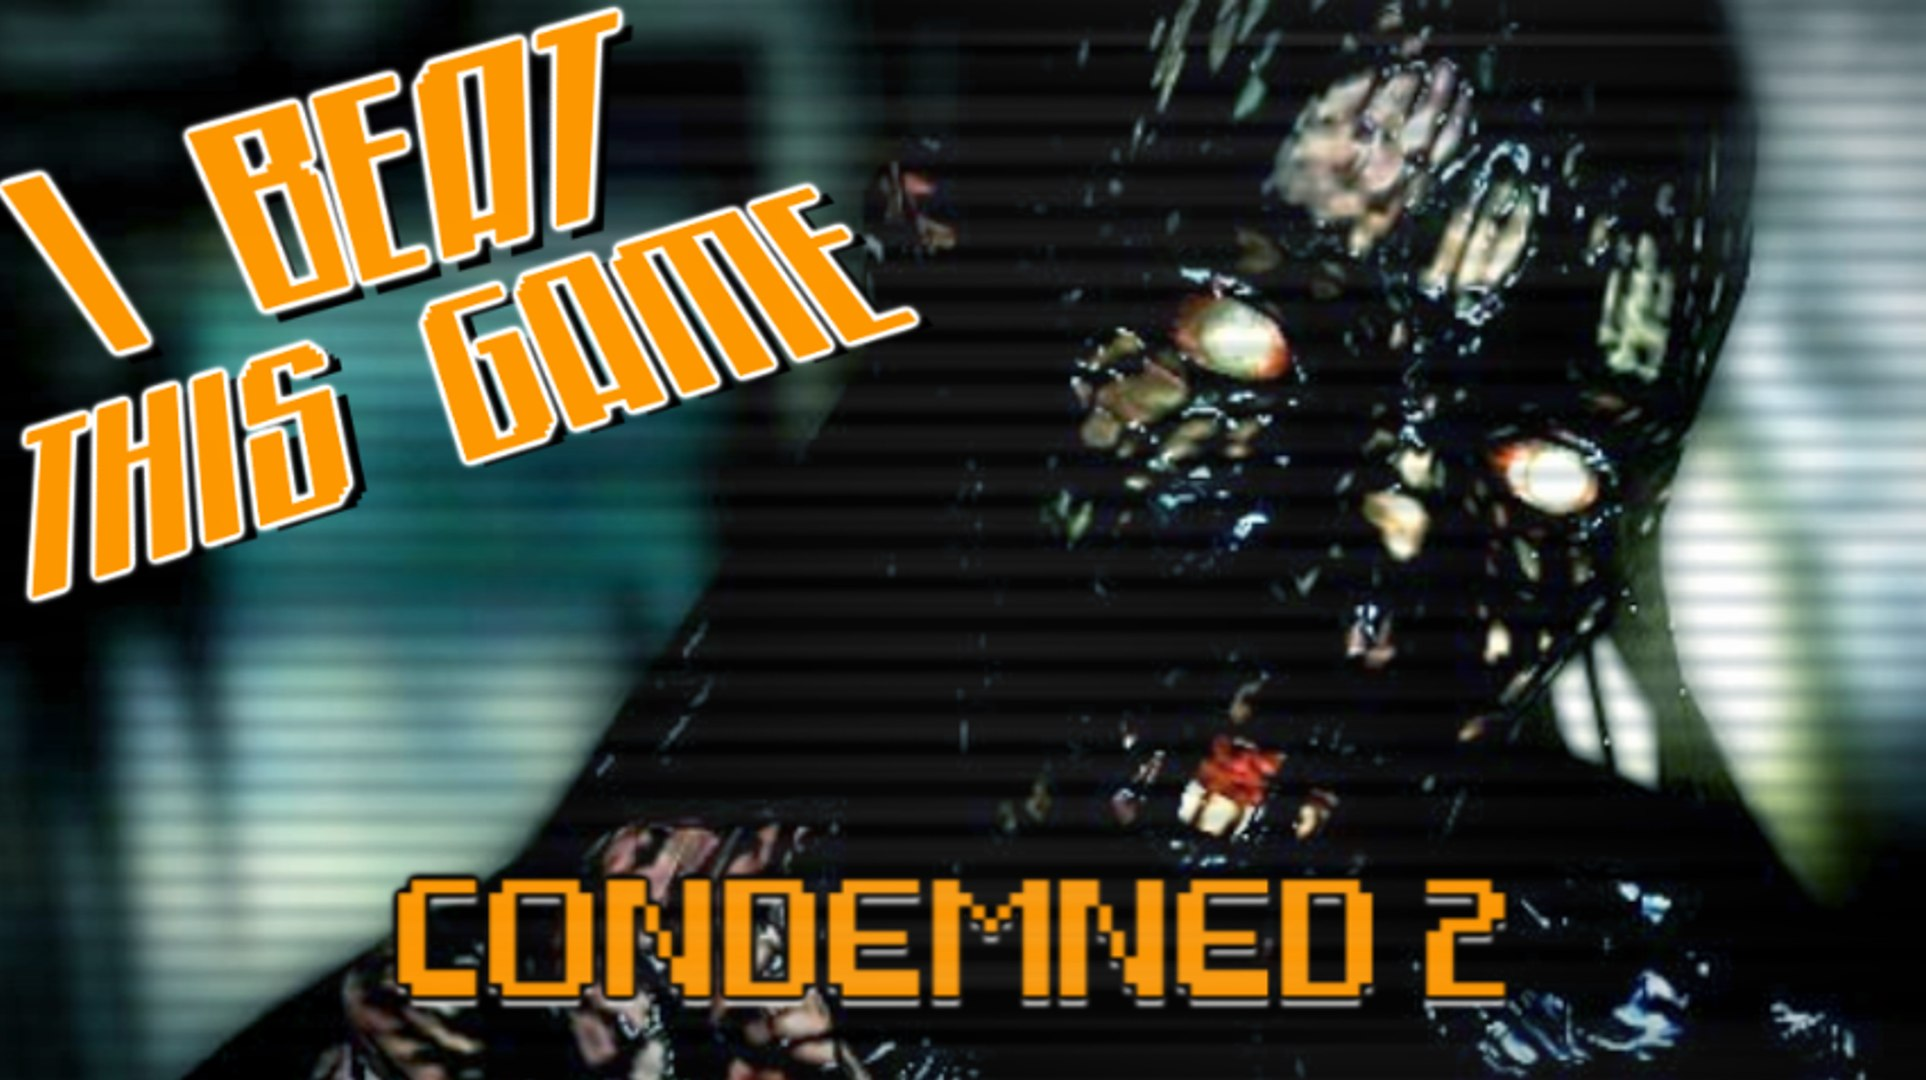 I Beat This Game - Condemned 2 : Bloodshot par FMA